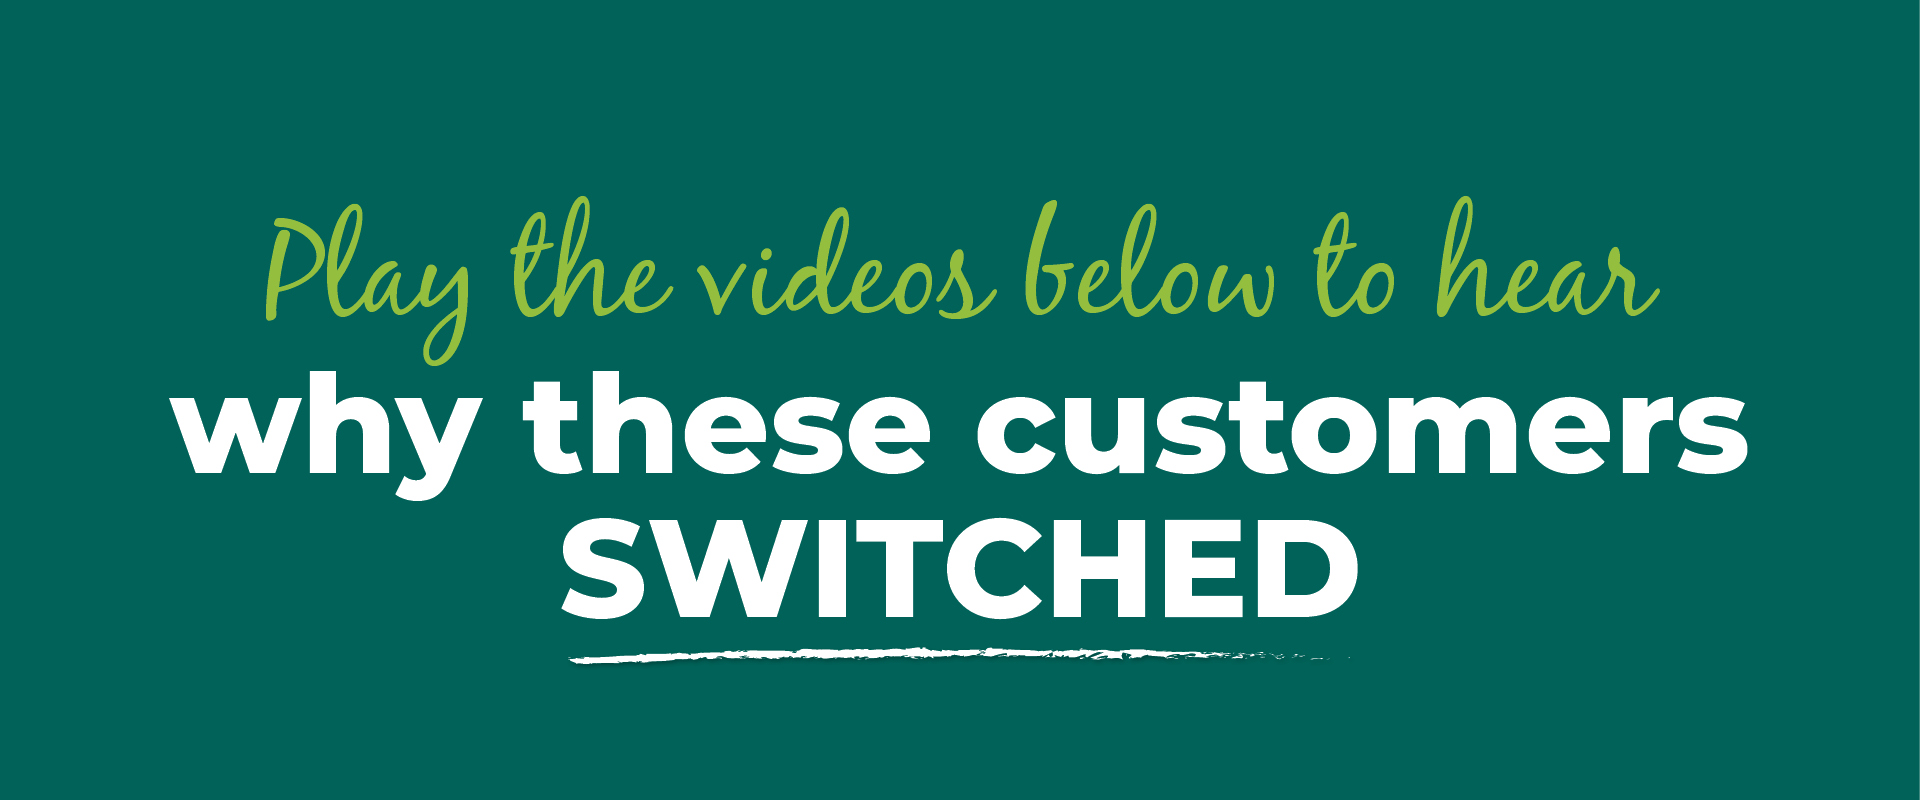 Click the videos below to hear why these customers switched